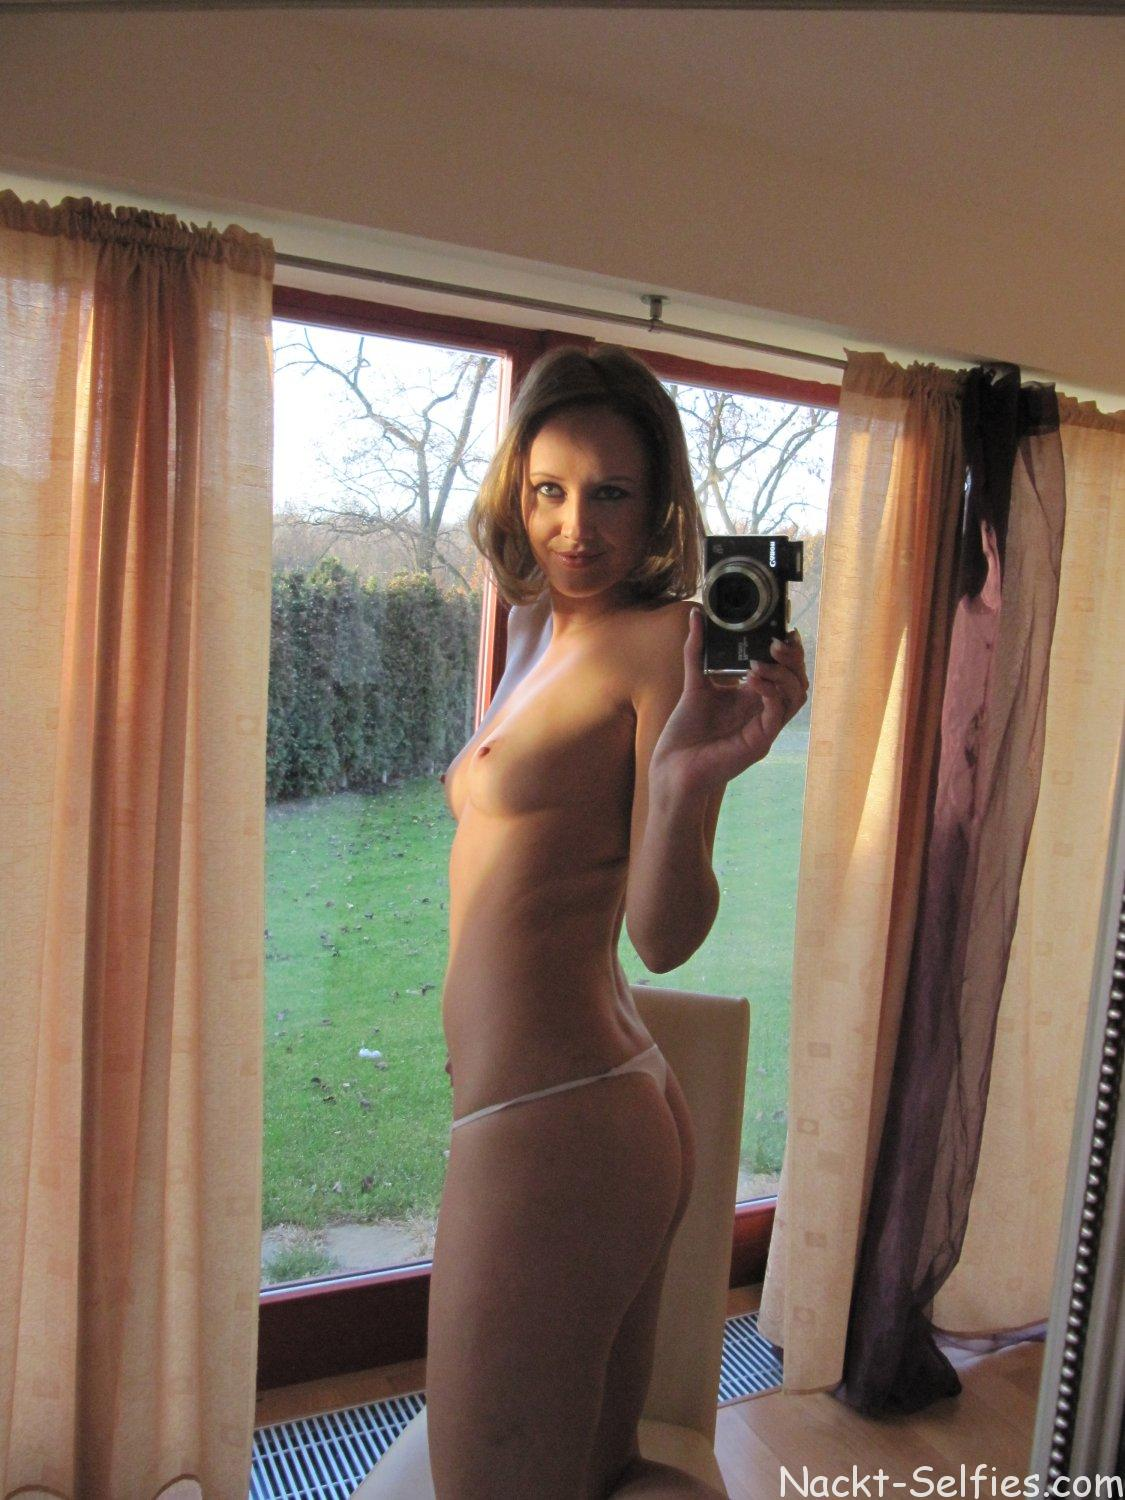 Privater Erotik Self Shot Ella 02